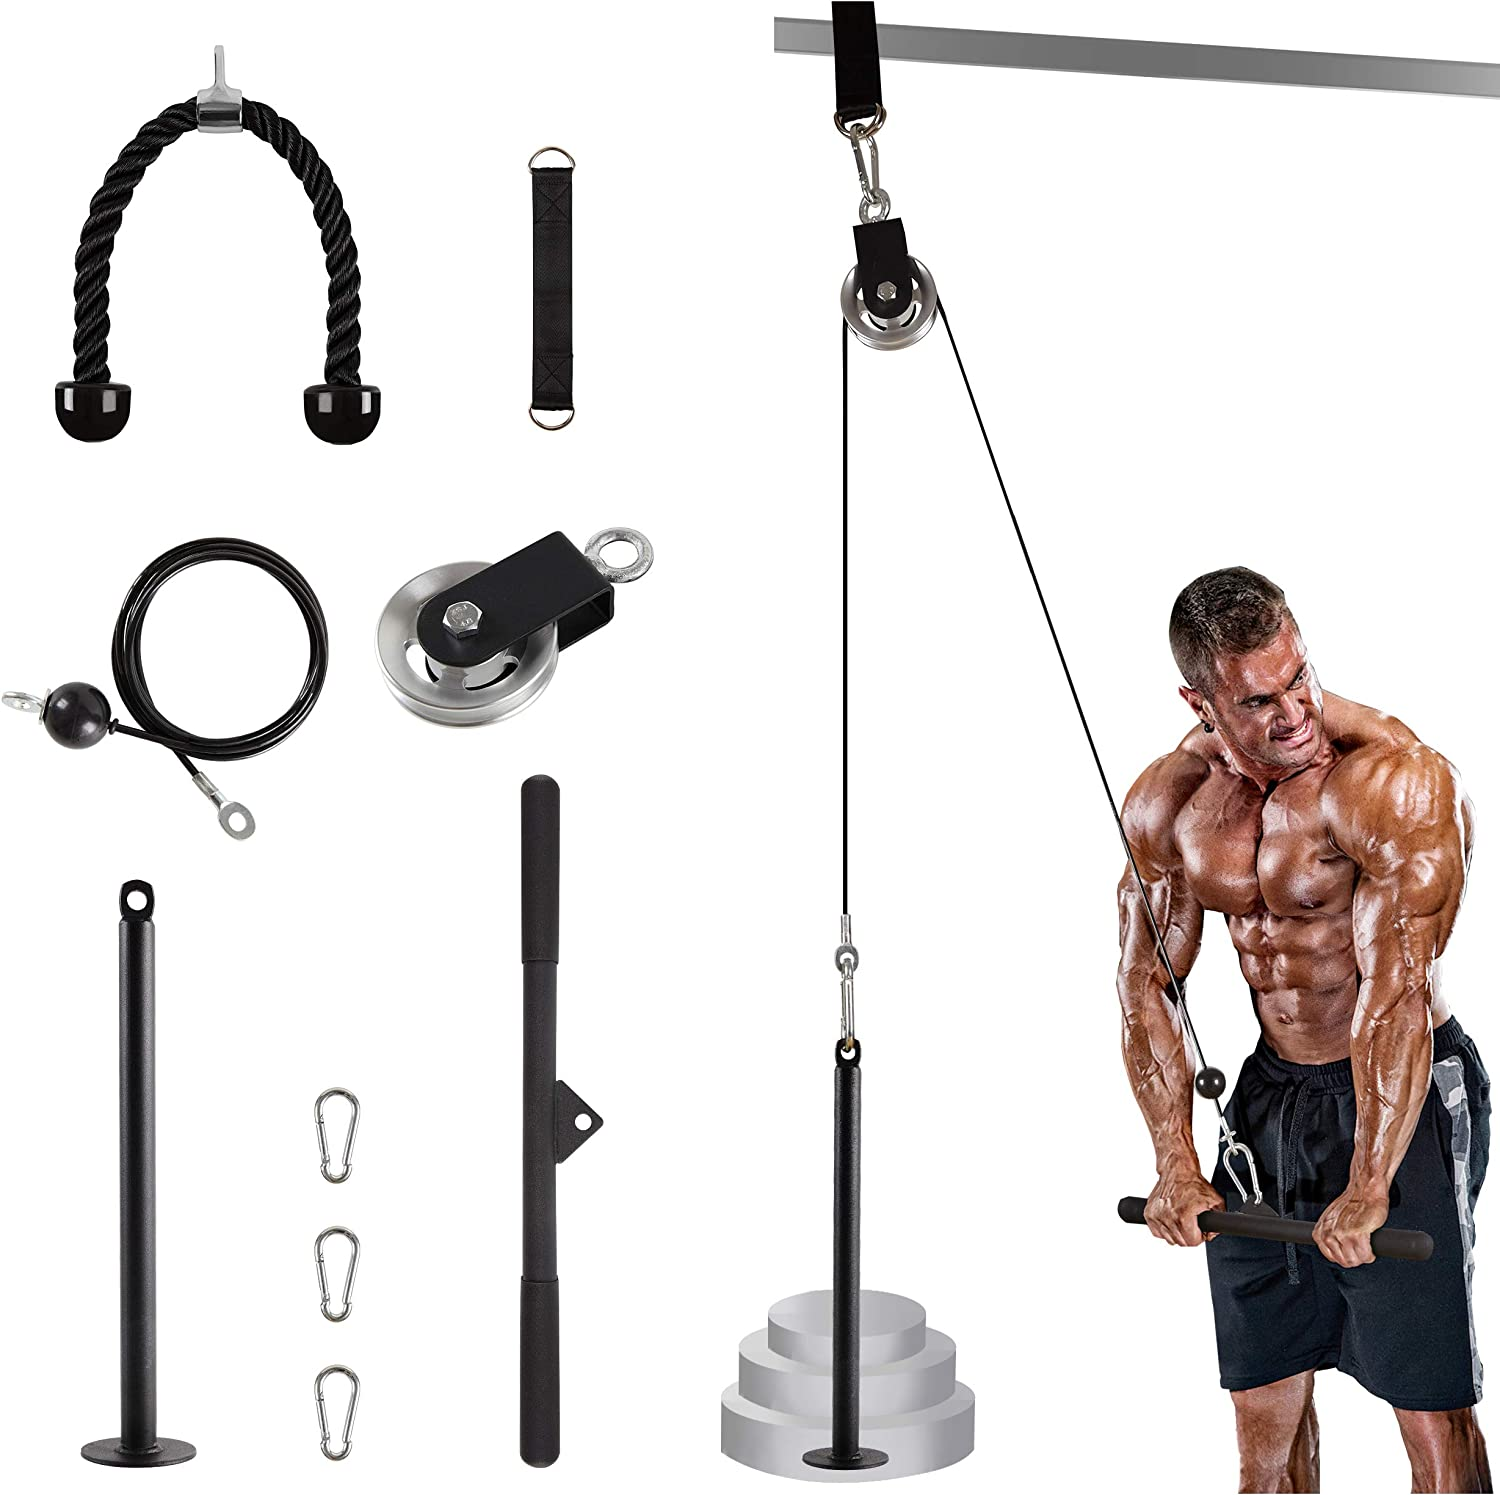 LAT Cable Pulley System Gym with Loading Pin Cable Machine Pulley Attachment for Tricep Pulldown, Biceps Curl, Back, Forearm, Shoulder - DIY Home Gym Equipment Beginner